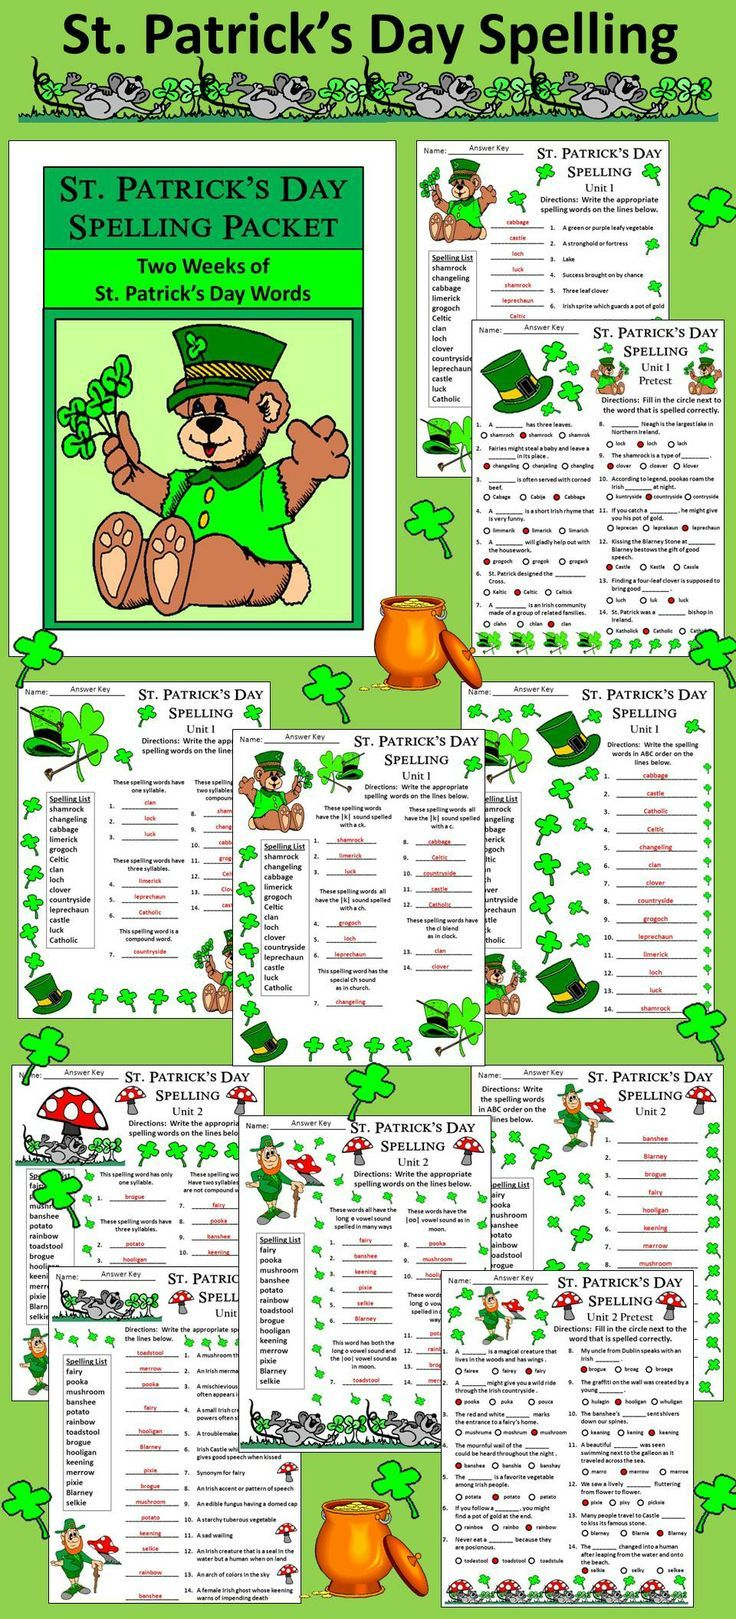 22 best st patricks day images on pinterest art activities learning resources and teaching. Black Bedroom Furniture Sets. Home Design Ideas